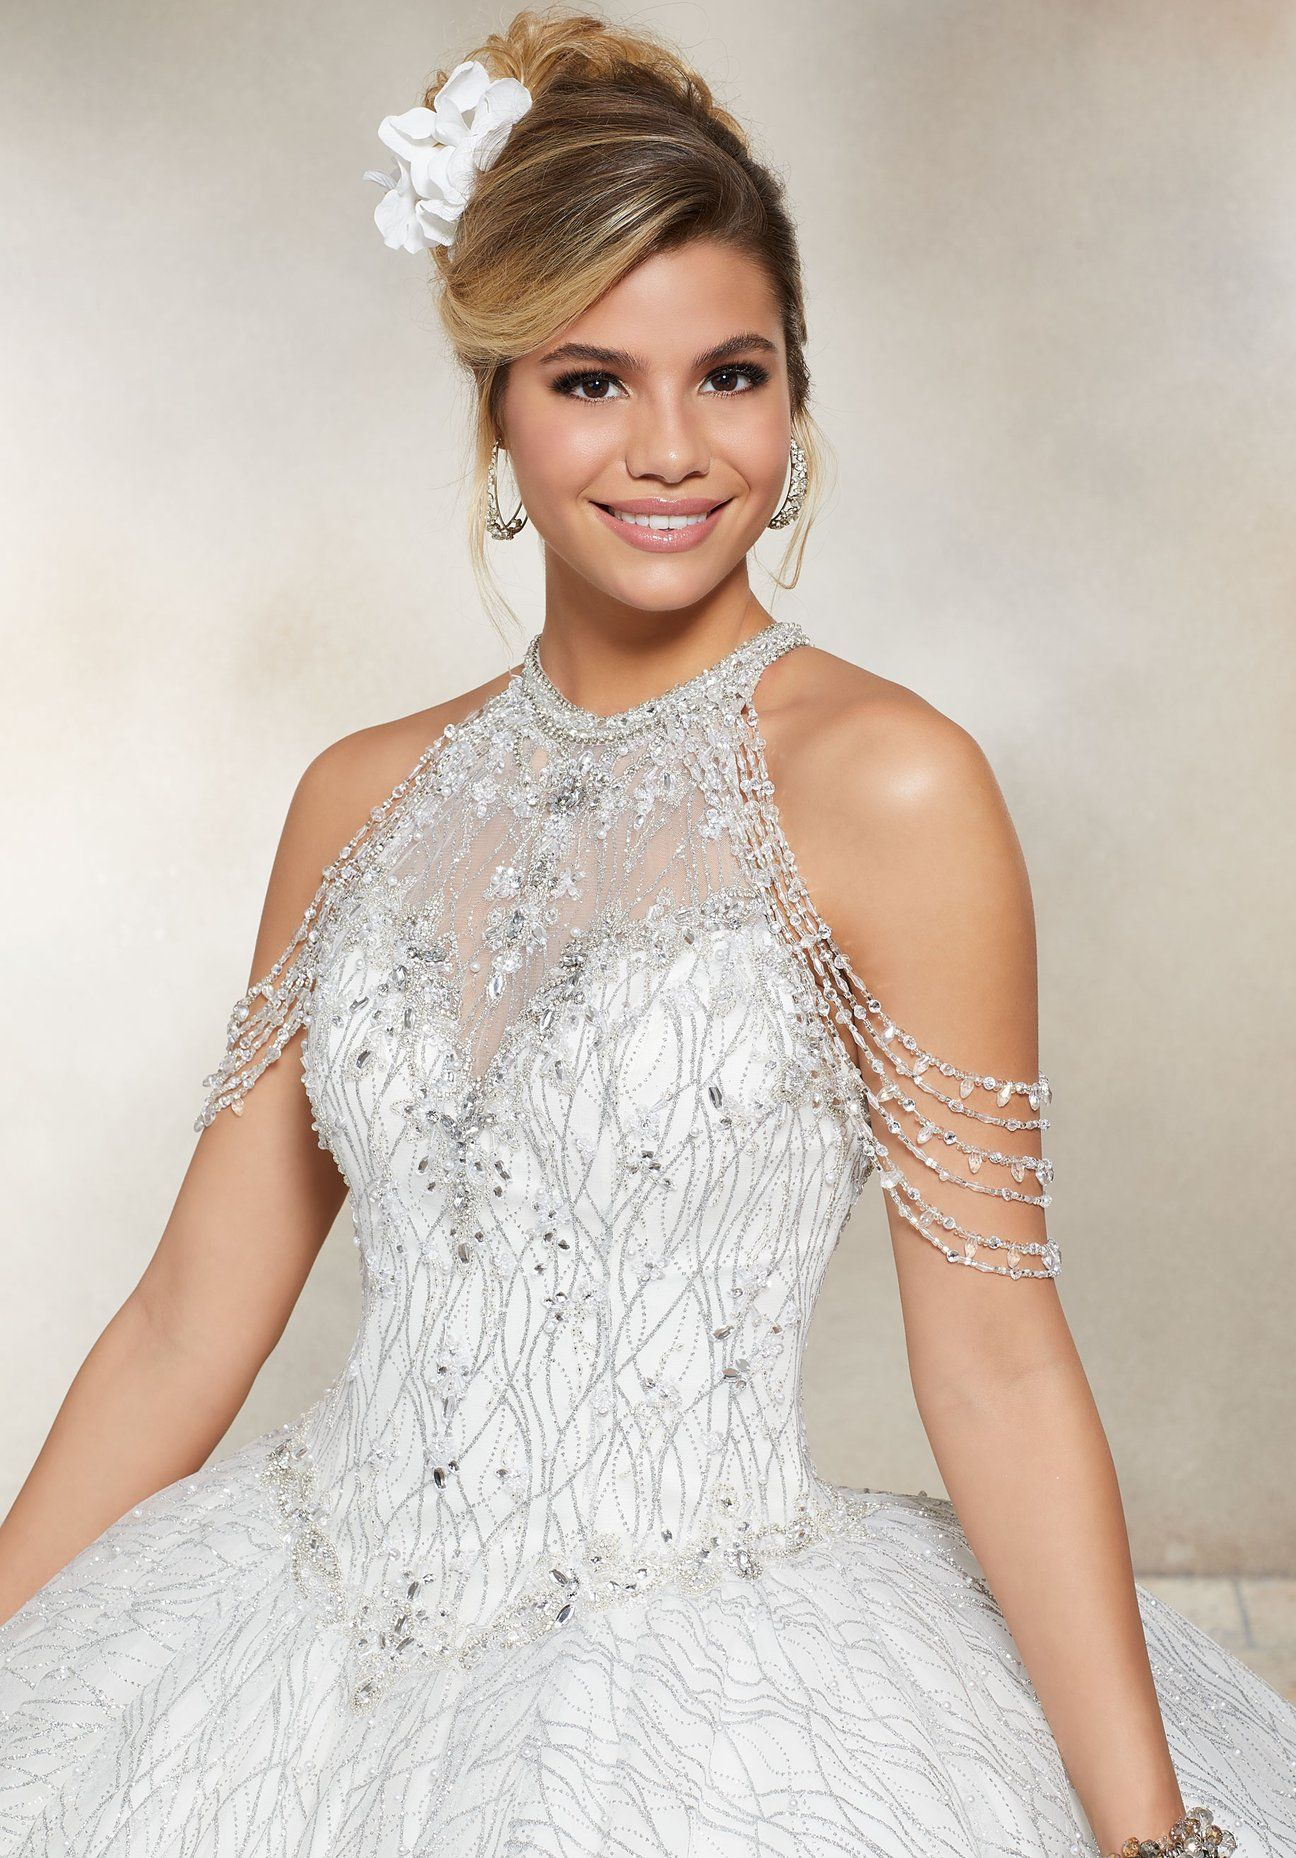 d6d3ee2c3a2 Quinceanera Dress Crystal Beading on a Patterned Glitter Mesh Ballgown